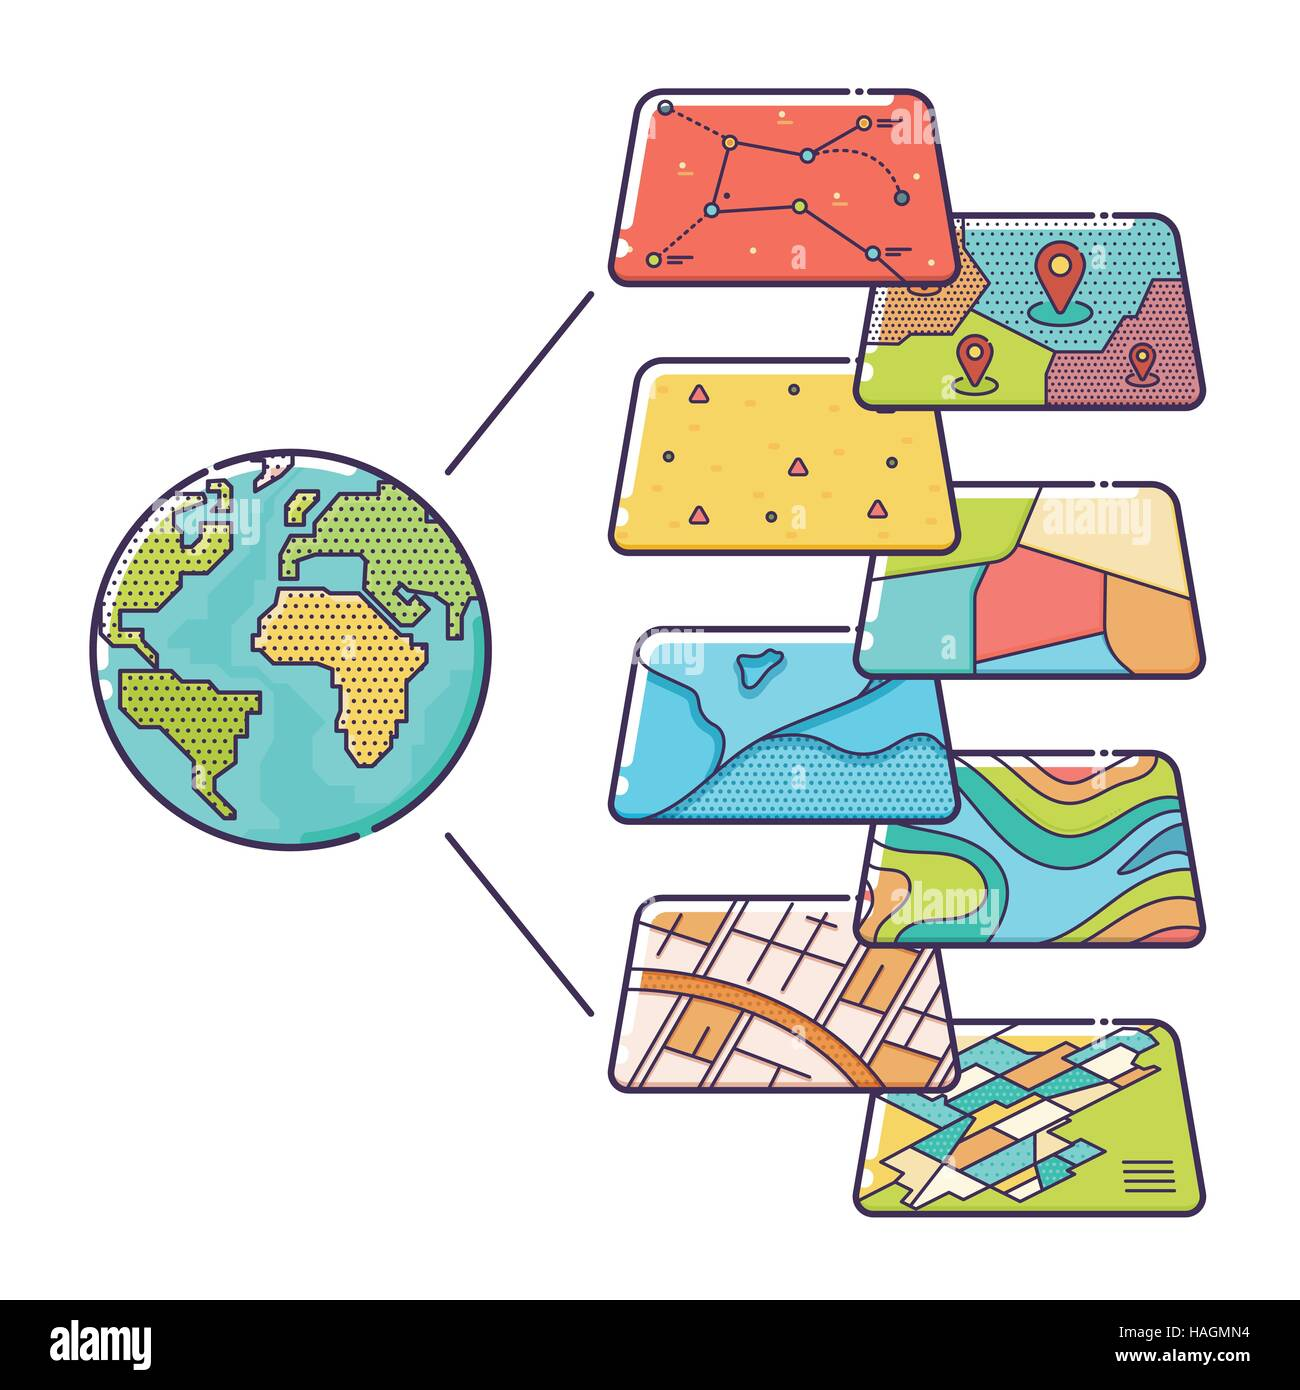 Line Art Layer : Vector illustration of gis spatial data layers concept for